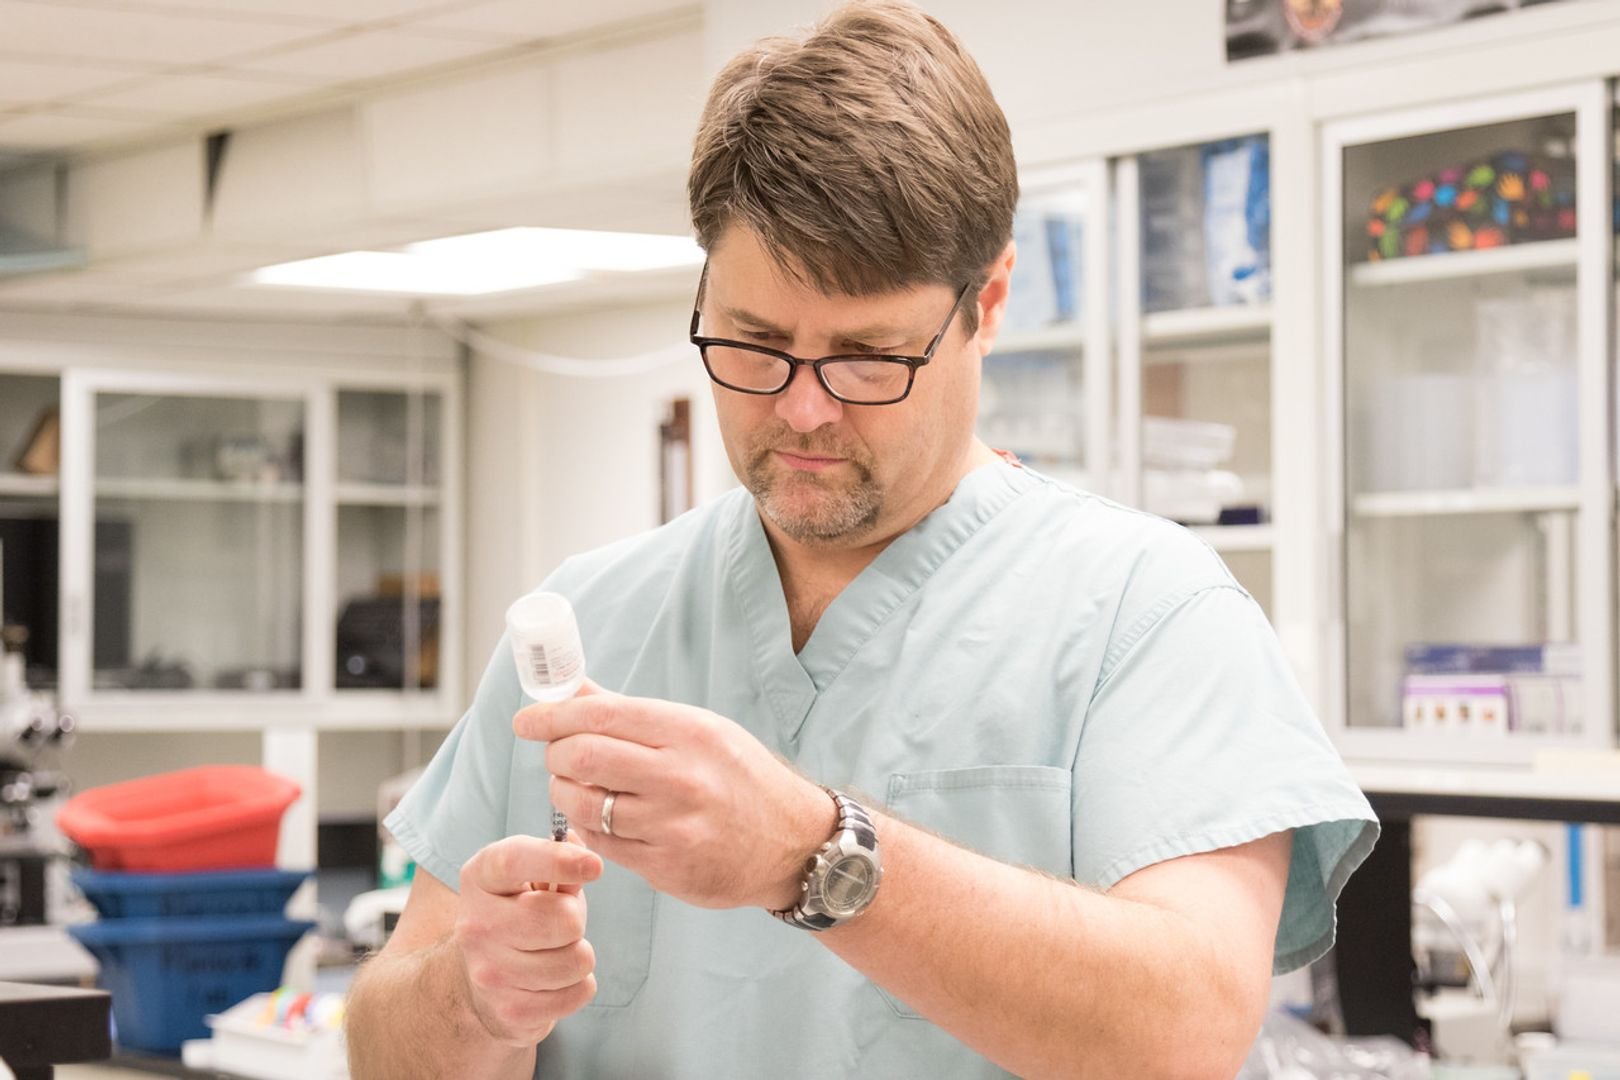 man stands with vial and syringe in hand in a lab